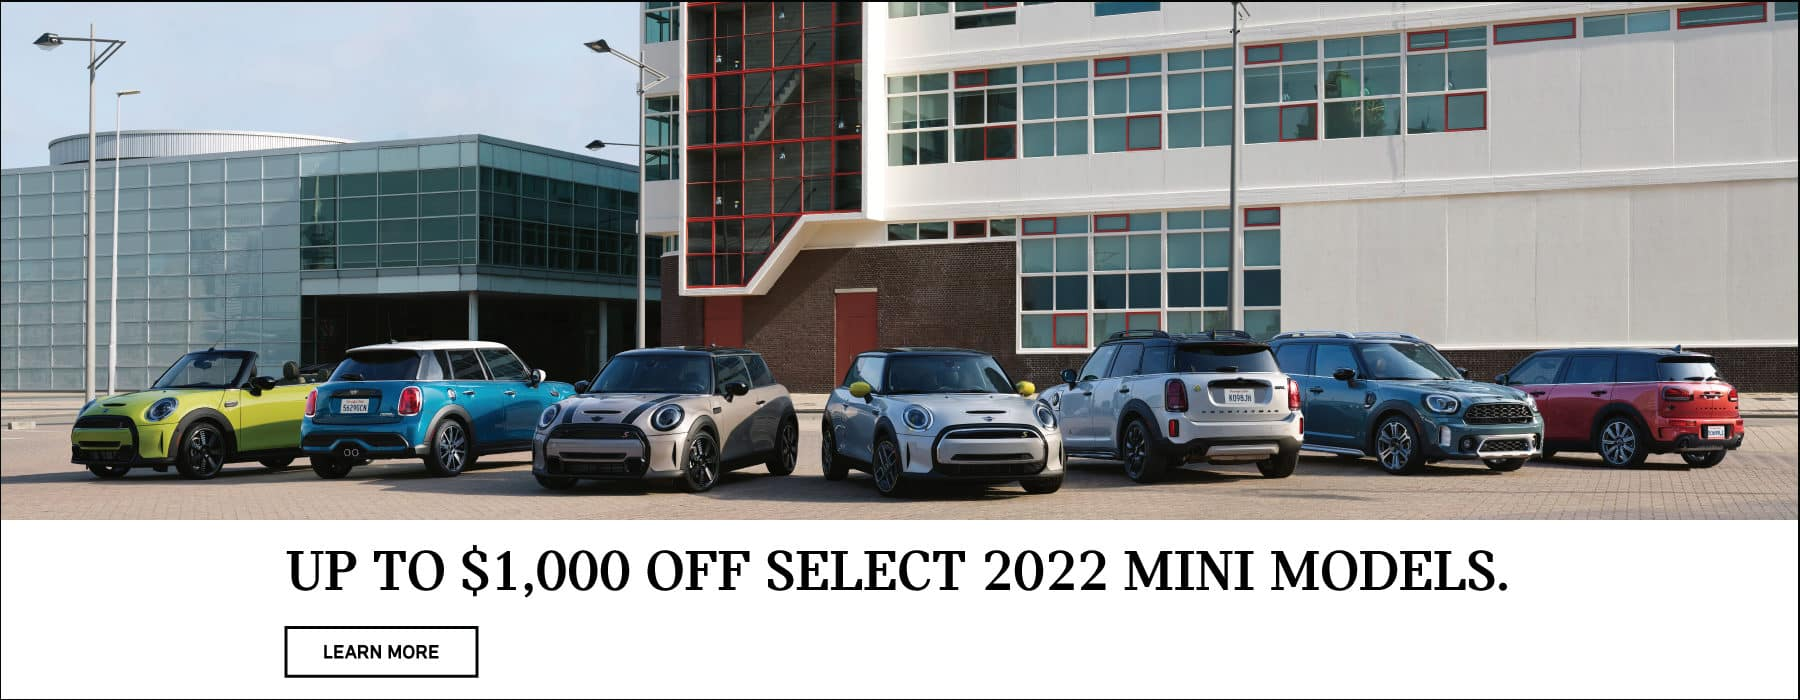 Get up to $1,000 off select 2022 MINI models.